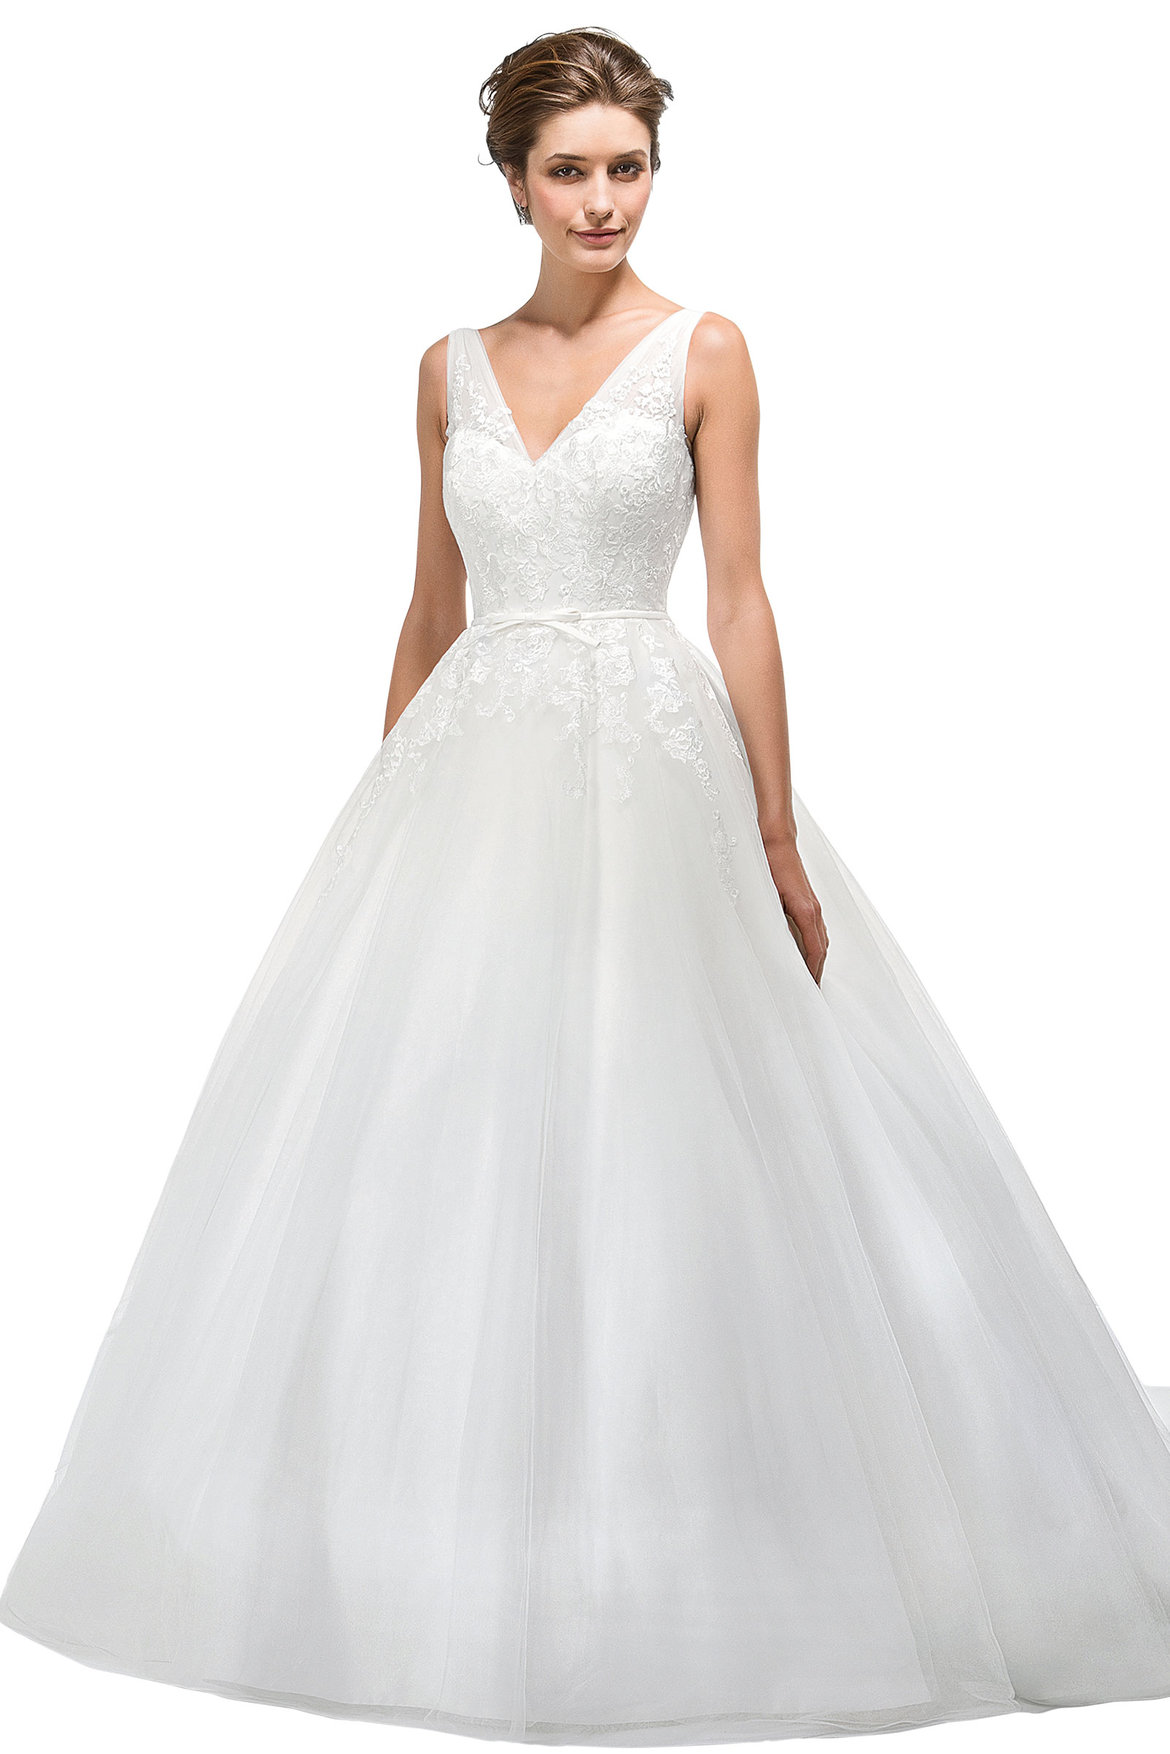 Best Style Of Wedding Dress For Body Type 25